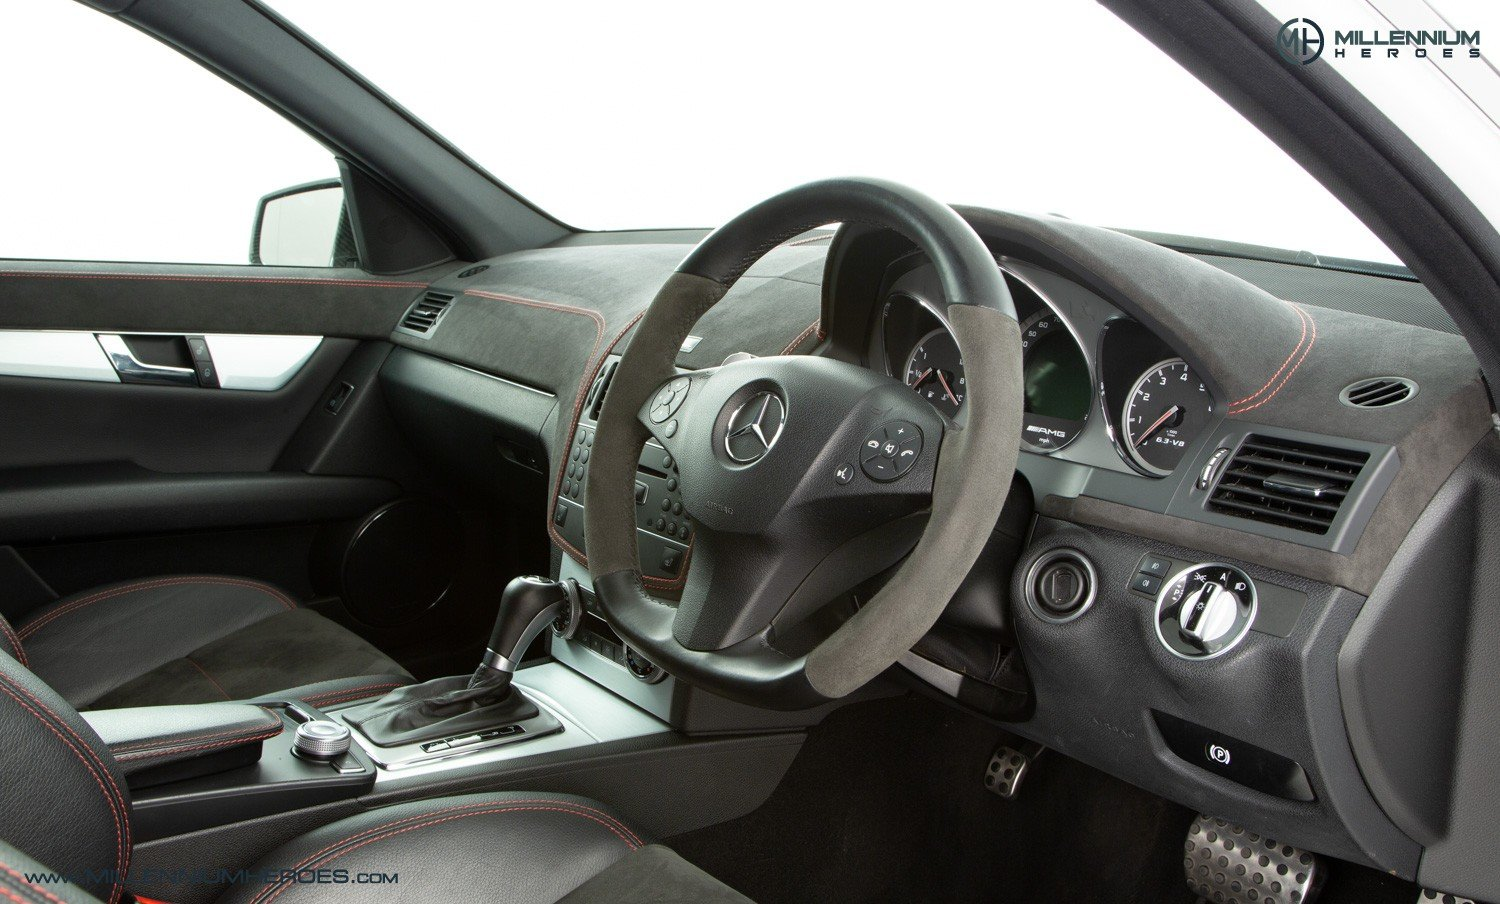 2010 MERCEDES C63 DR520 // EXCLUSIVE GB SPECIAL EDITION / 1 OF 20 For Sale (picture 4 of 6)